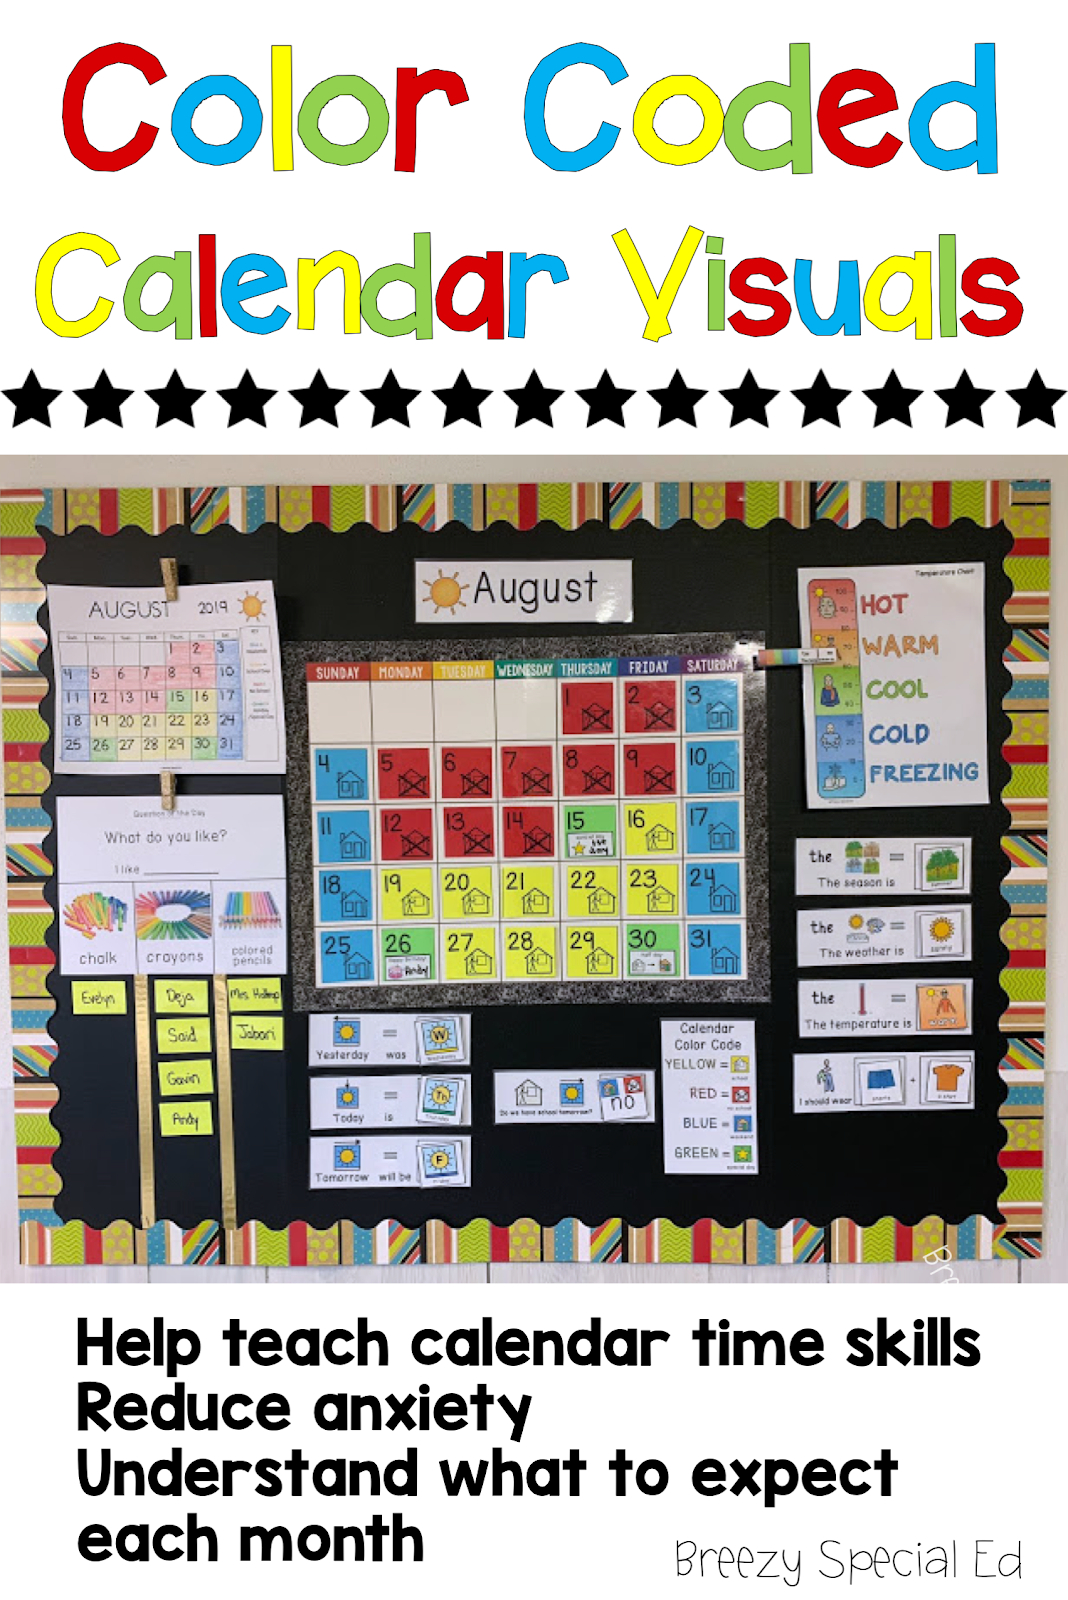 Color Coded Calendar Visuals - Breezy Special Ed Free Color Coded Calendars